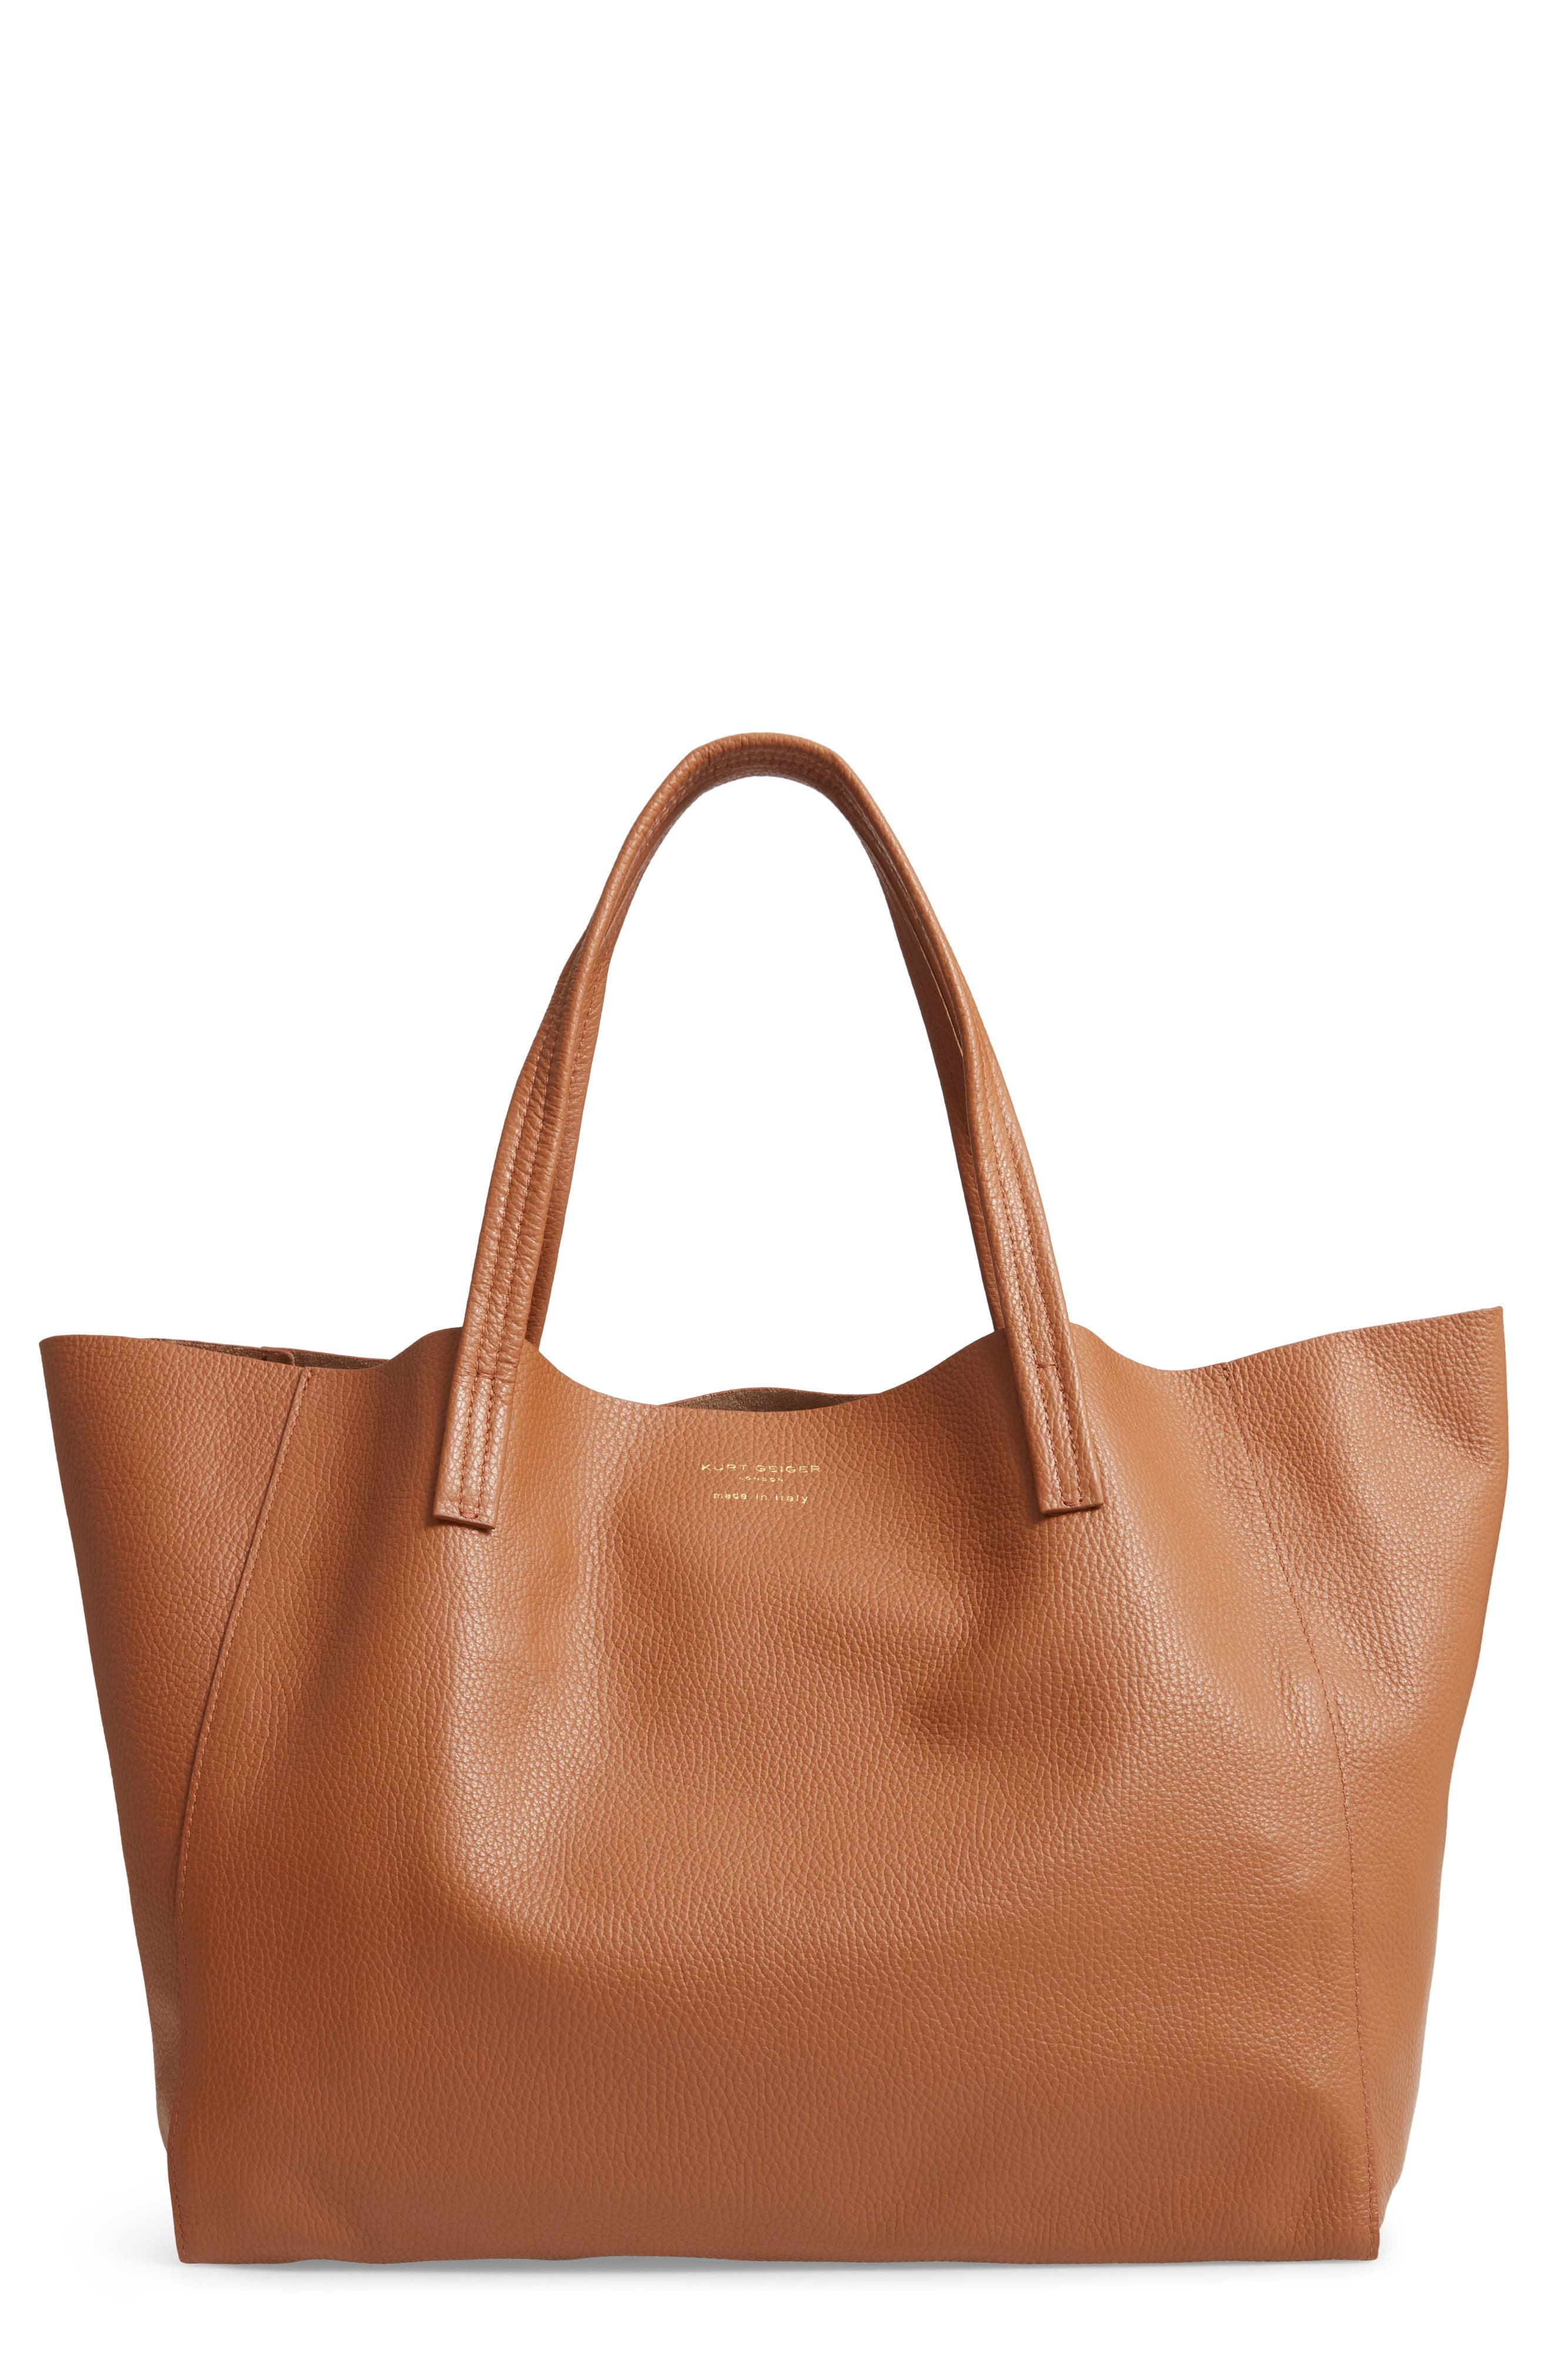 Violet Leather Tote - Brown in Tan